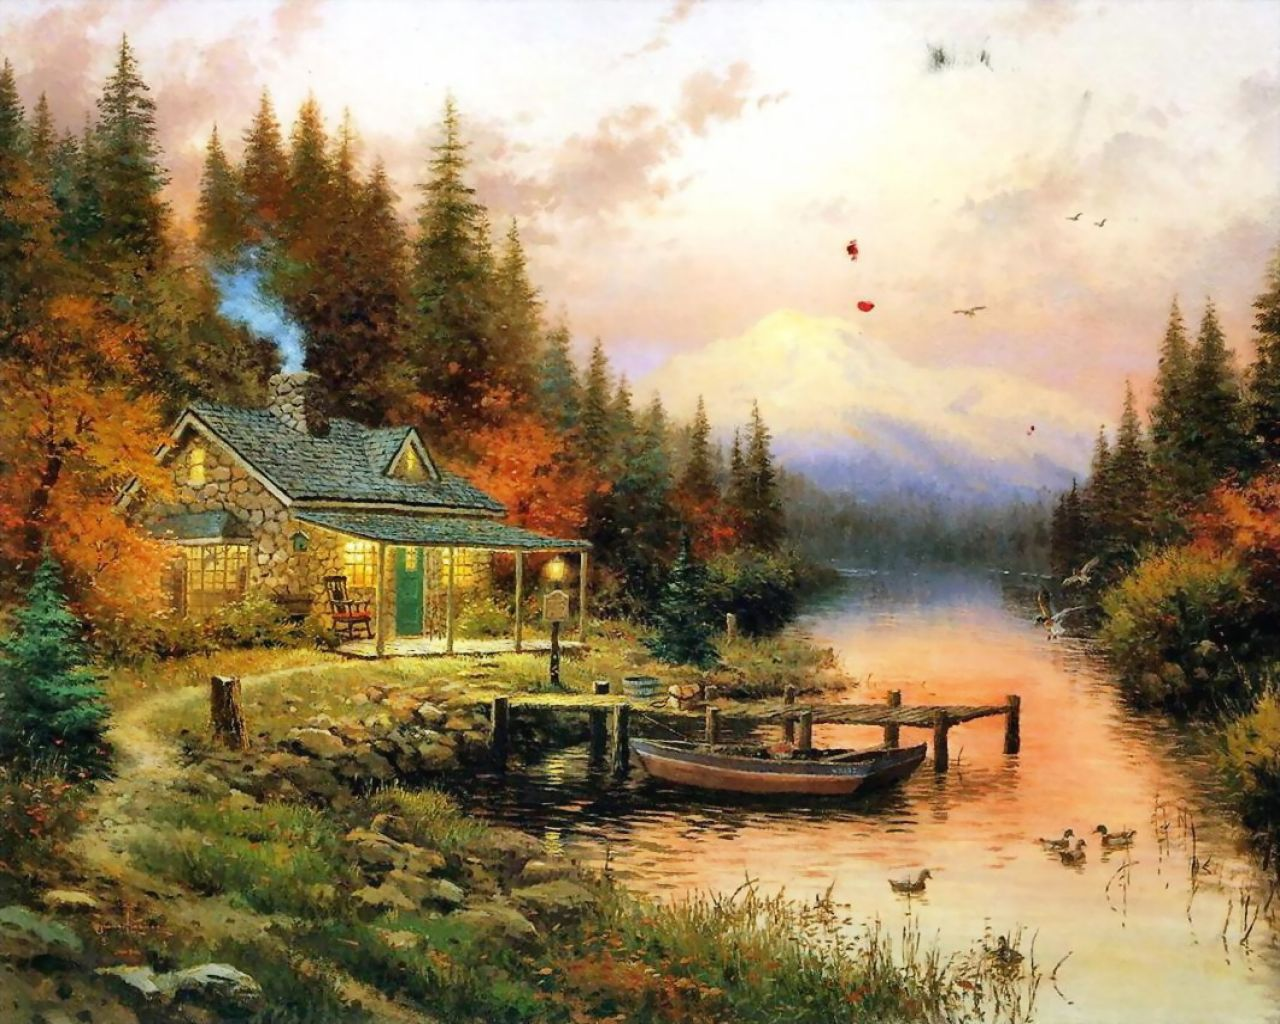 Art / Thomas Kinkade - House Near the River #3104